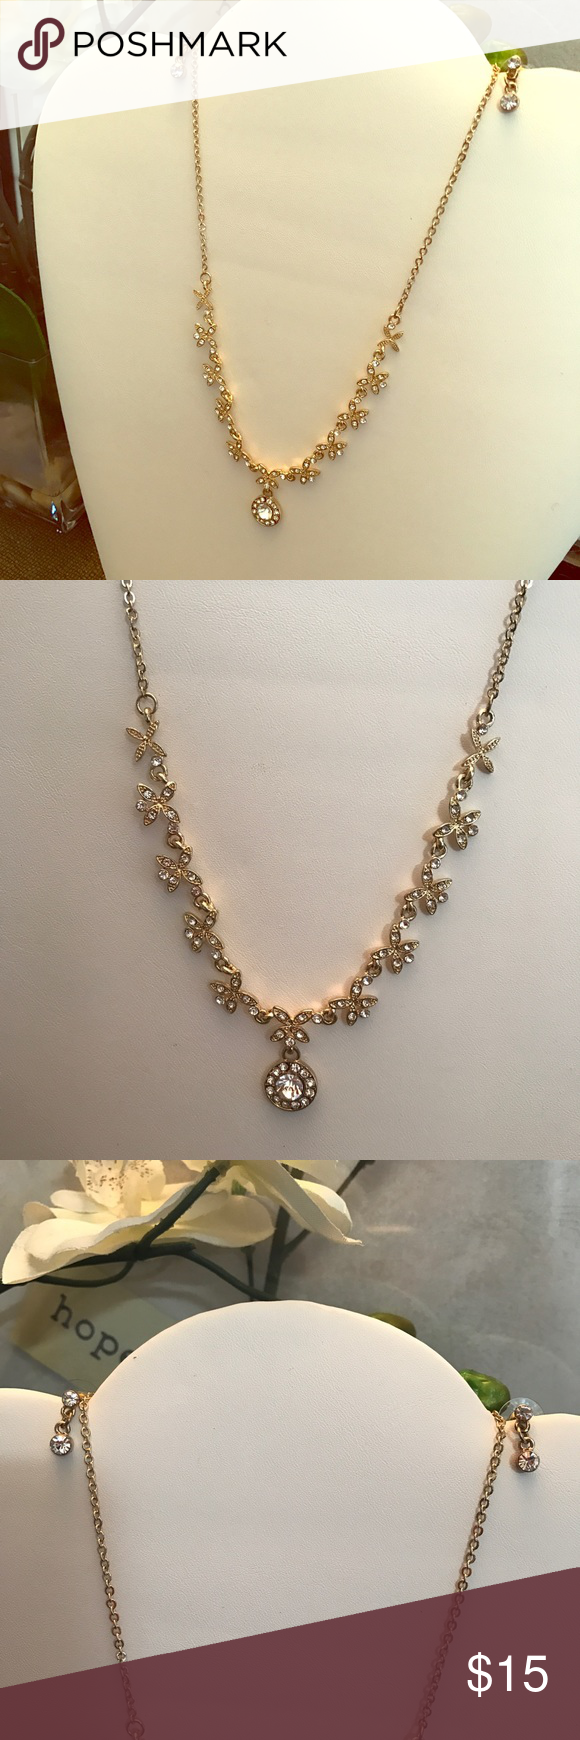 New gorgeous dainty necklace and earrings set statement necklaces